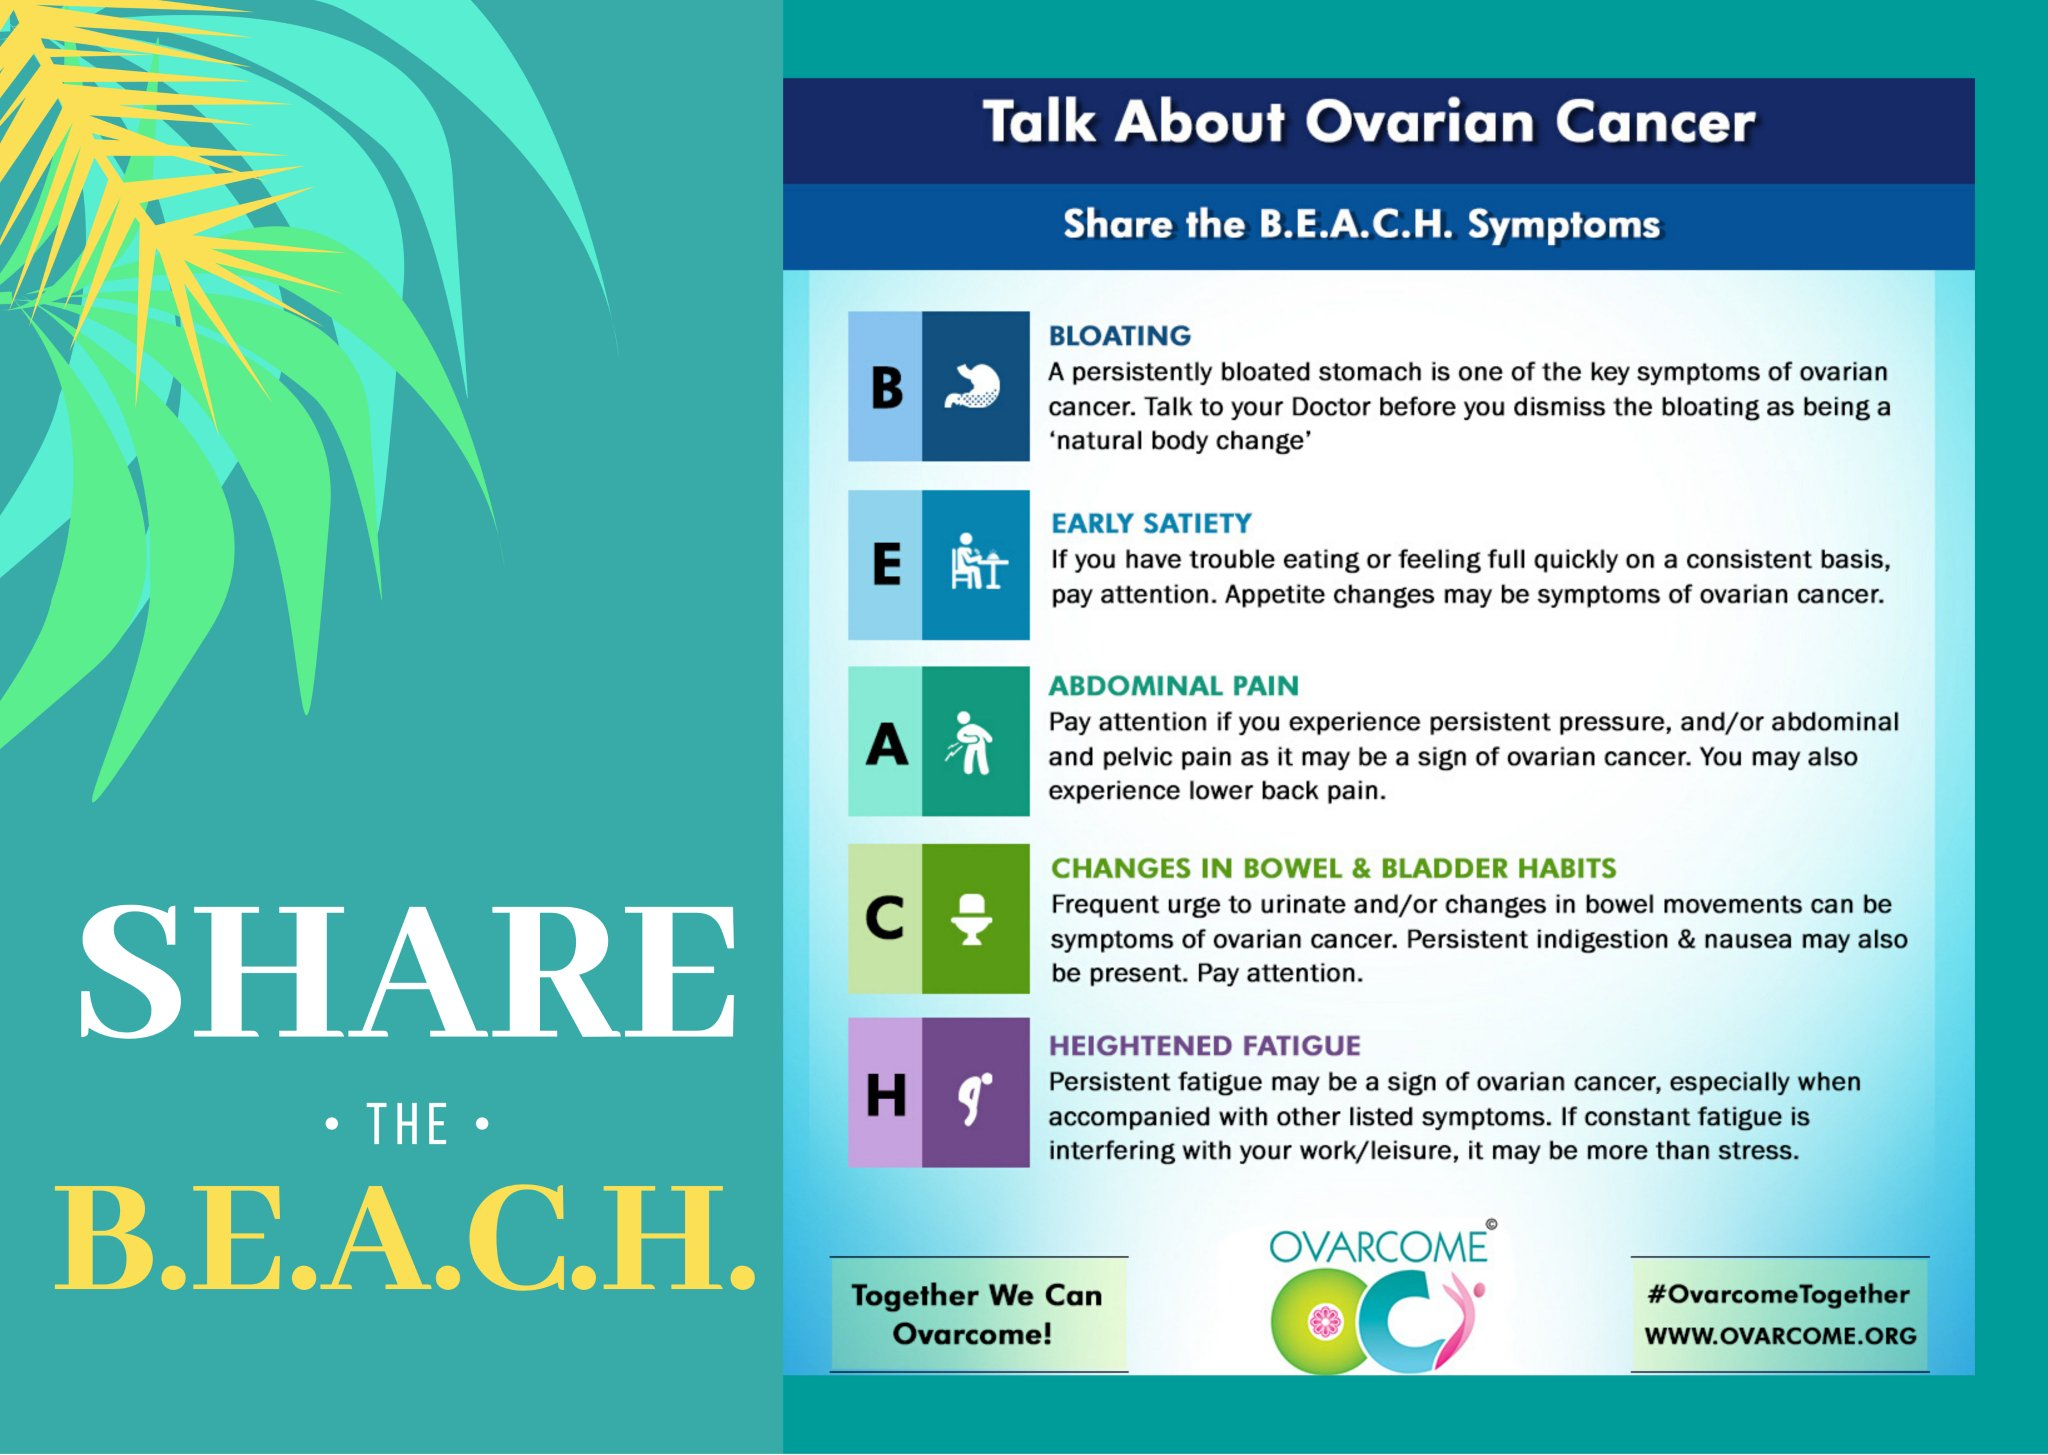 Ovarcome On Twitter Give This Silent Disease Your Voice Talk About Ovarian Cancer Share The B E A C H Symptoms With Friends Family Far And Near Together Weovarcome Ovariancancer Mondaymotivaton Https T Co B7t6az6yrx